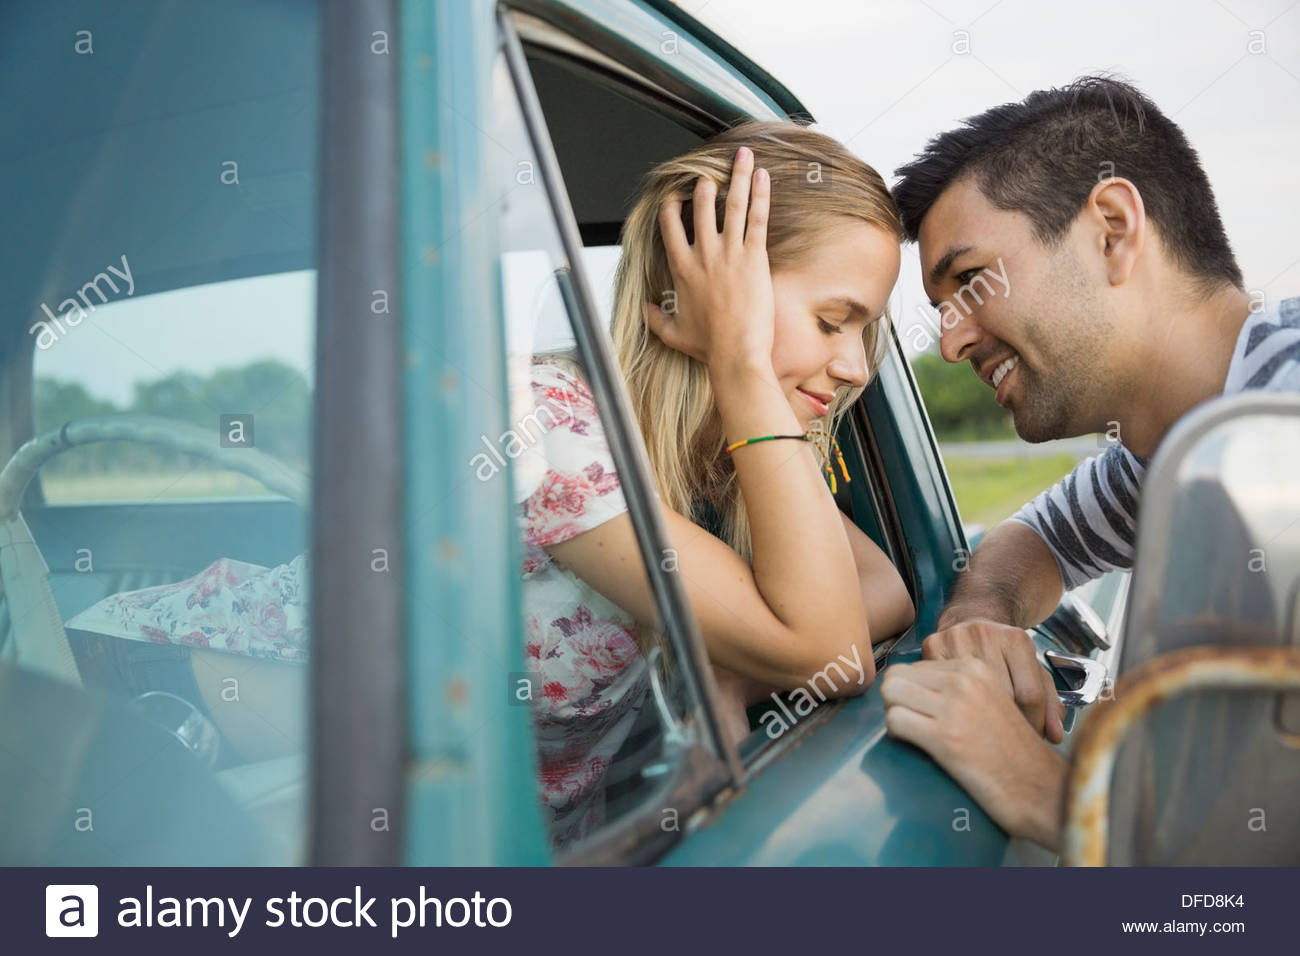 Young couple outdoors Photo Stock